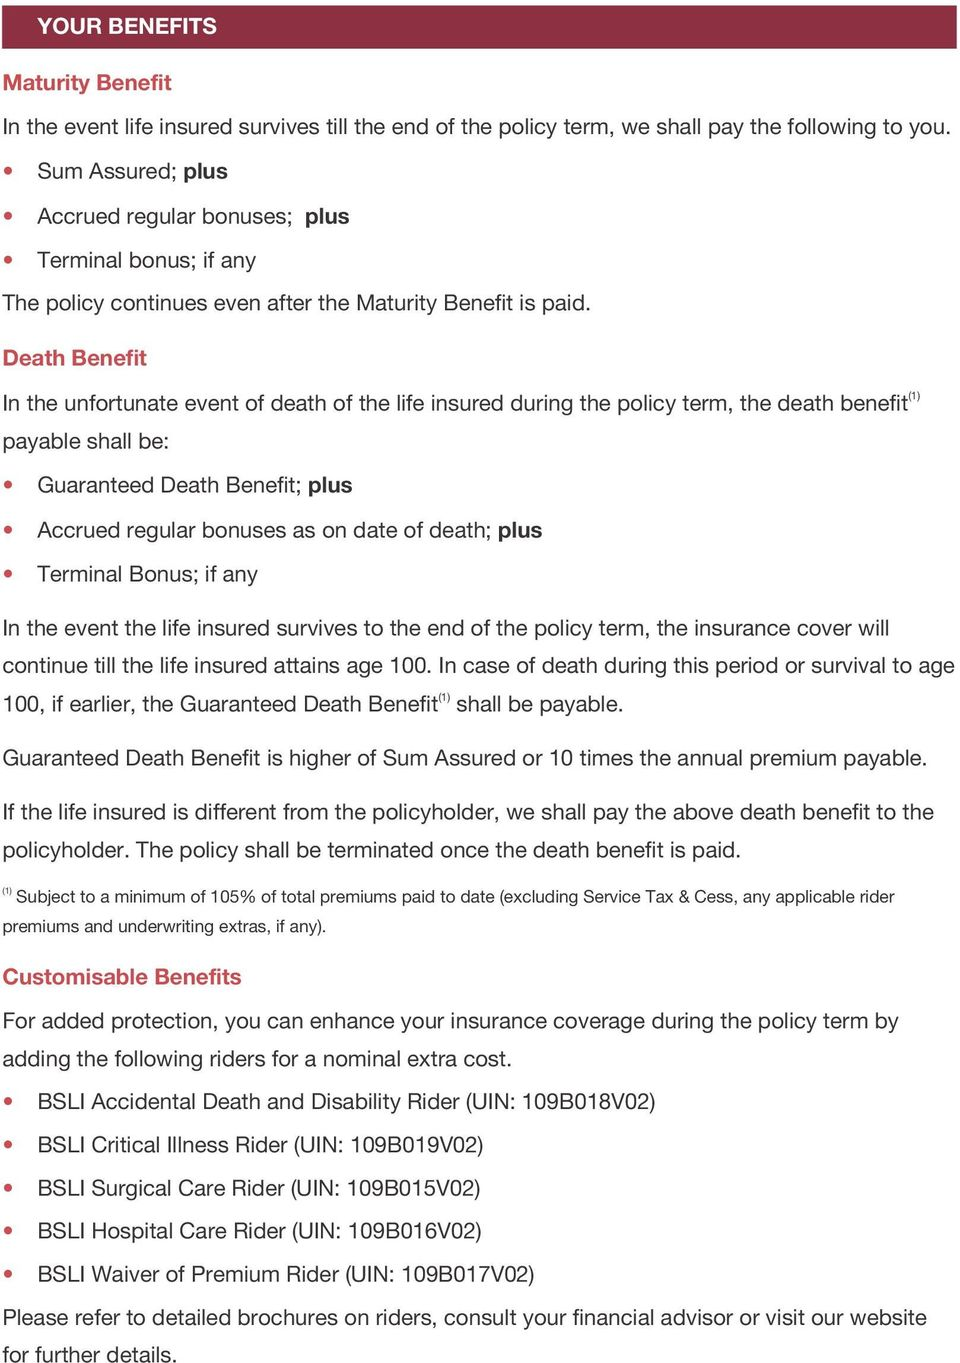 Death Benefit (1) In the unfortunate event of death of the life insured during the policy term, the death benefit payable shall be: Guaranteed Death Benefit; plus Accrued regular bonuses as on date